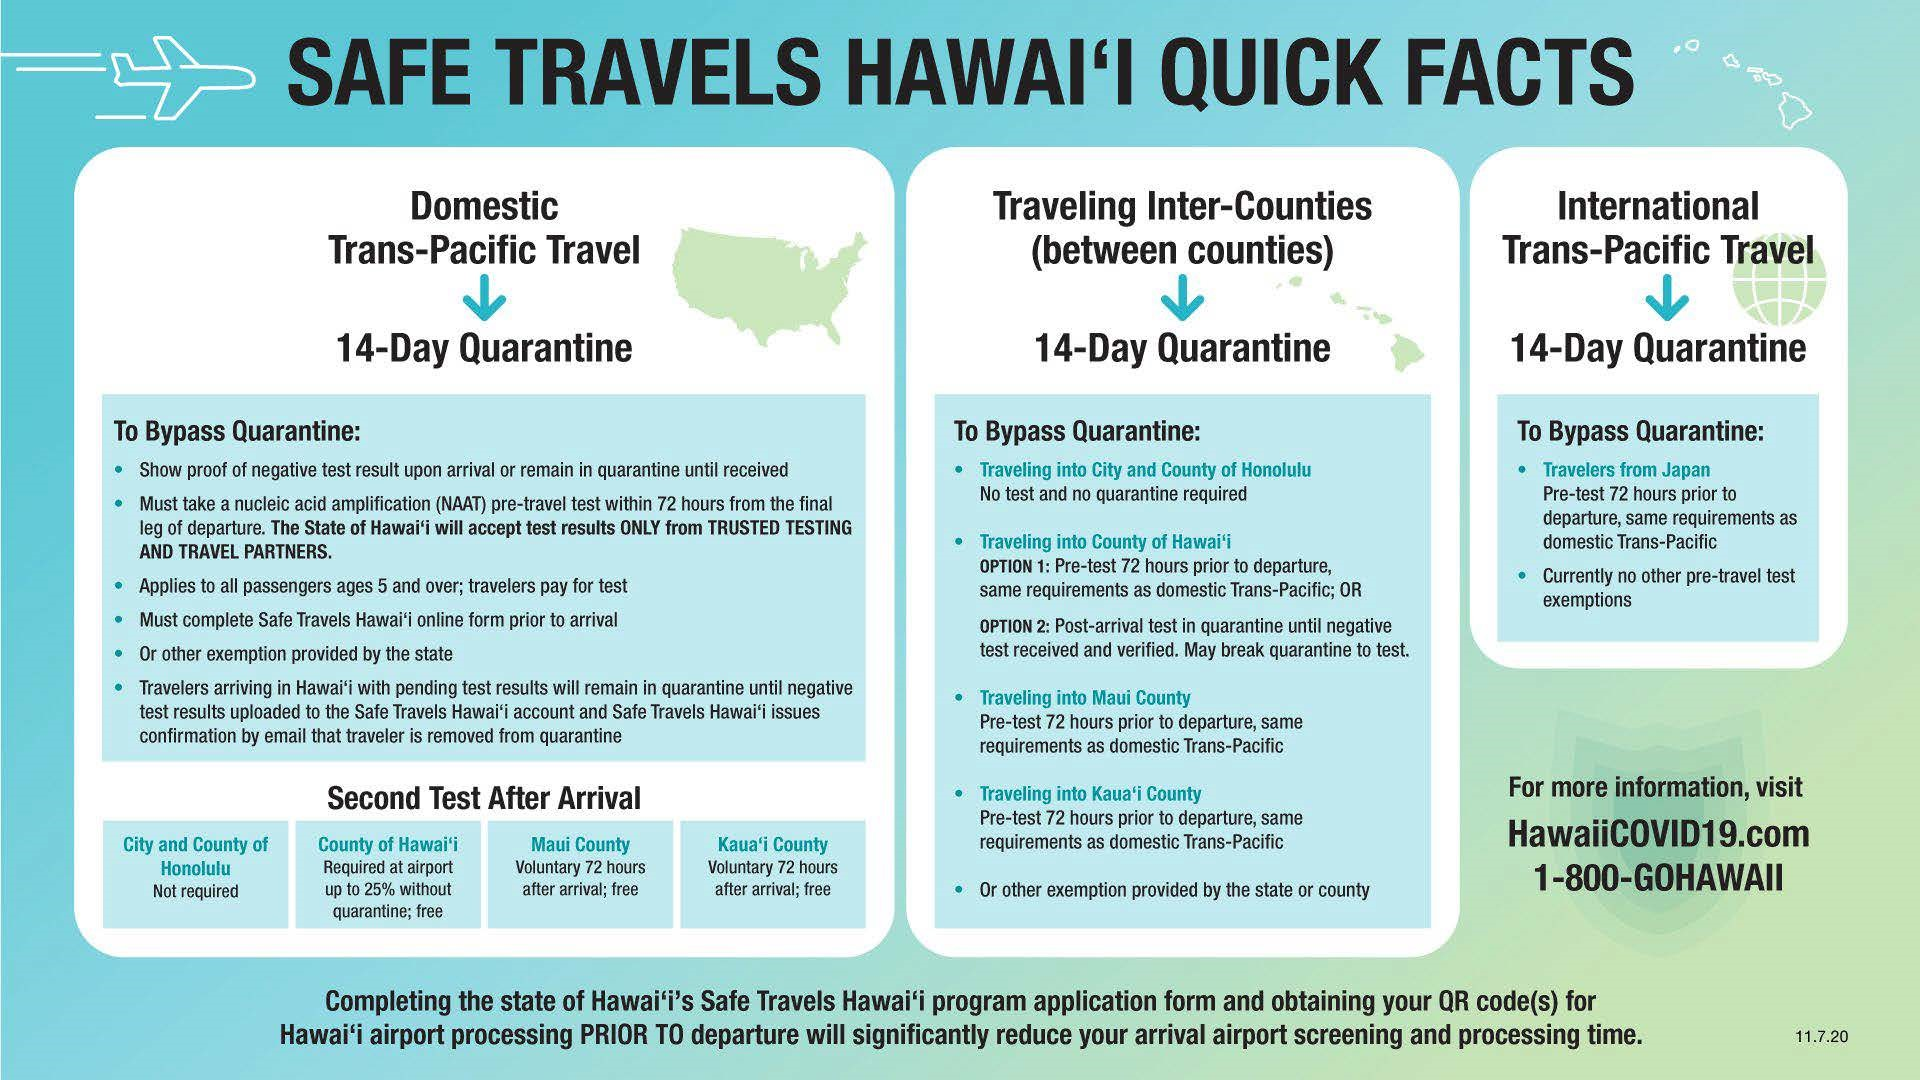 Safe Travels Hawaii Quick Facts - November 16 2020